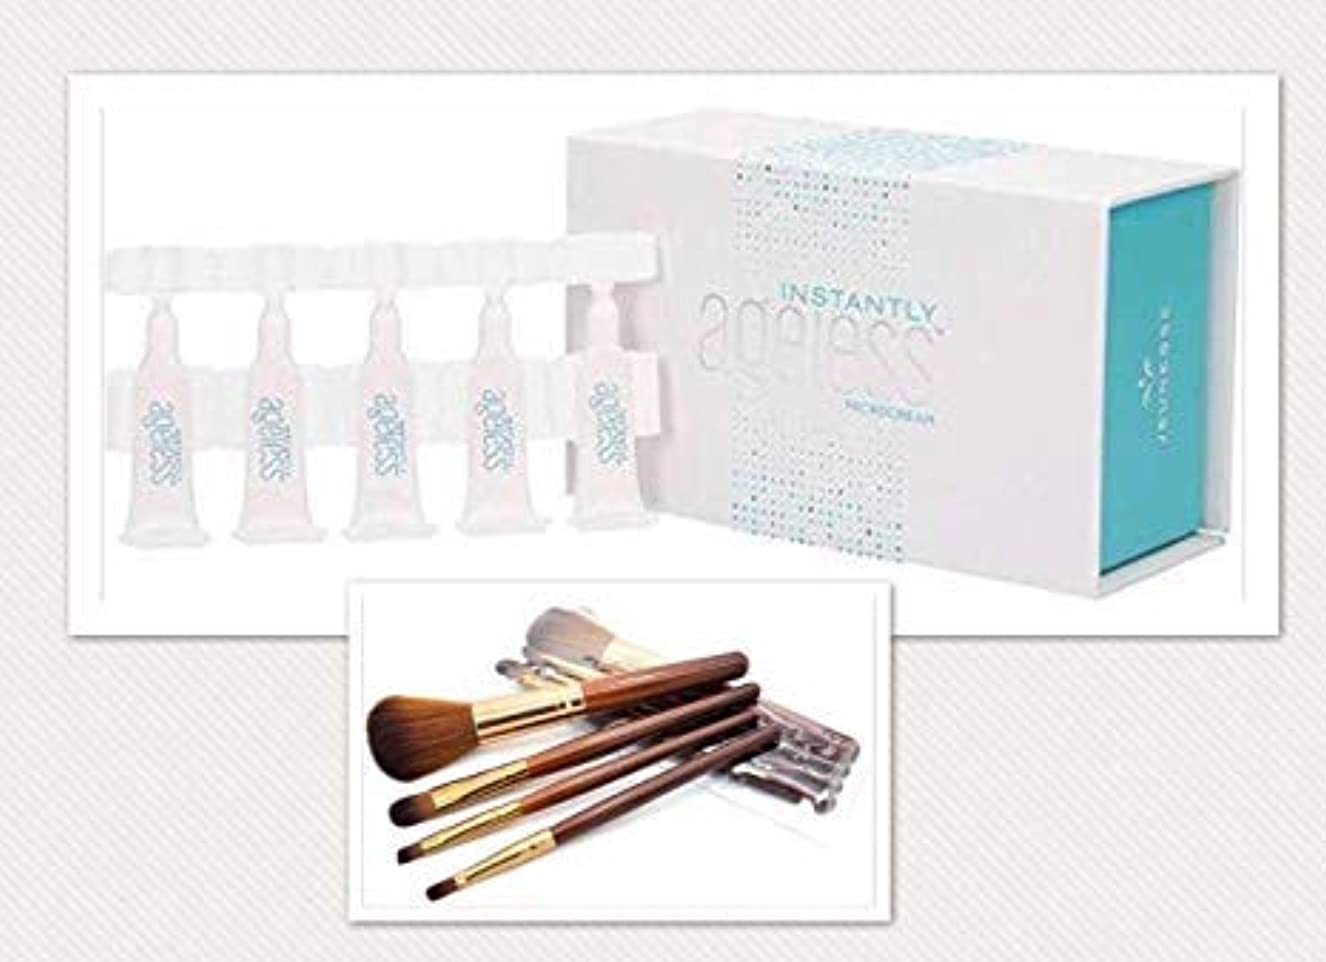 うっかり化学薬品測るJeunesse Instantly Ageless 25 Vials. with 4 FREE travel size makeup brushes and case【並行輸入品】メイクブラシ4本付き